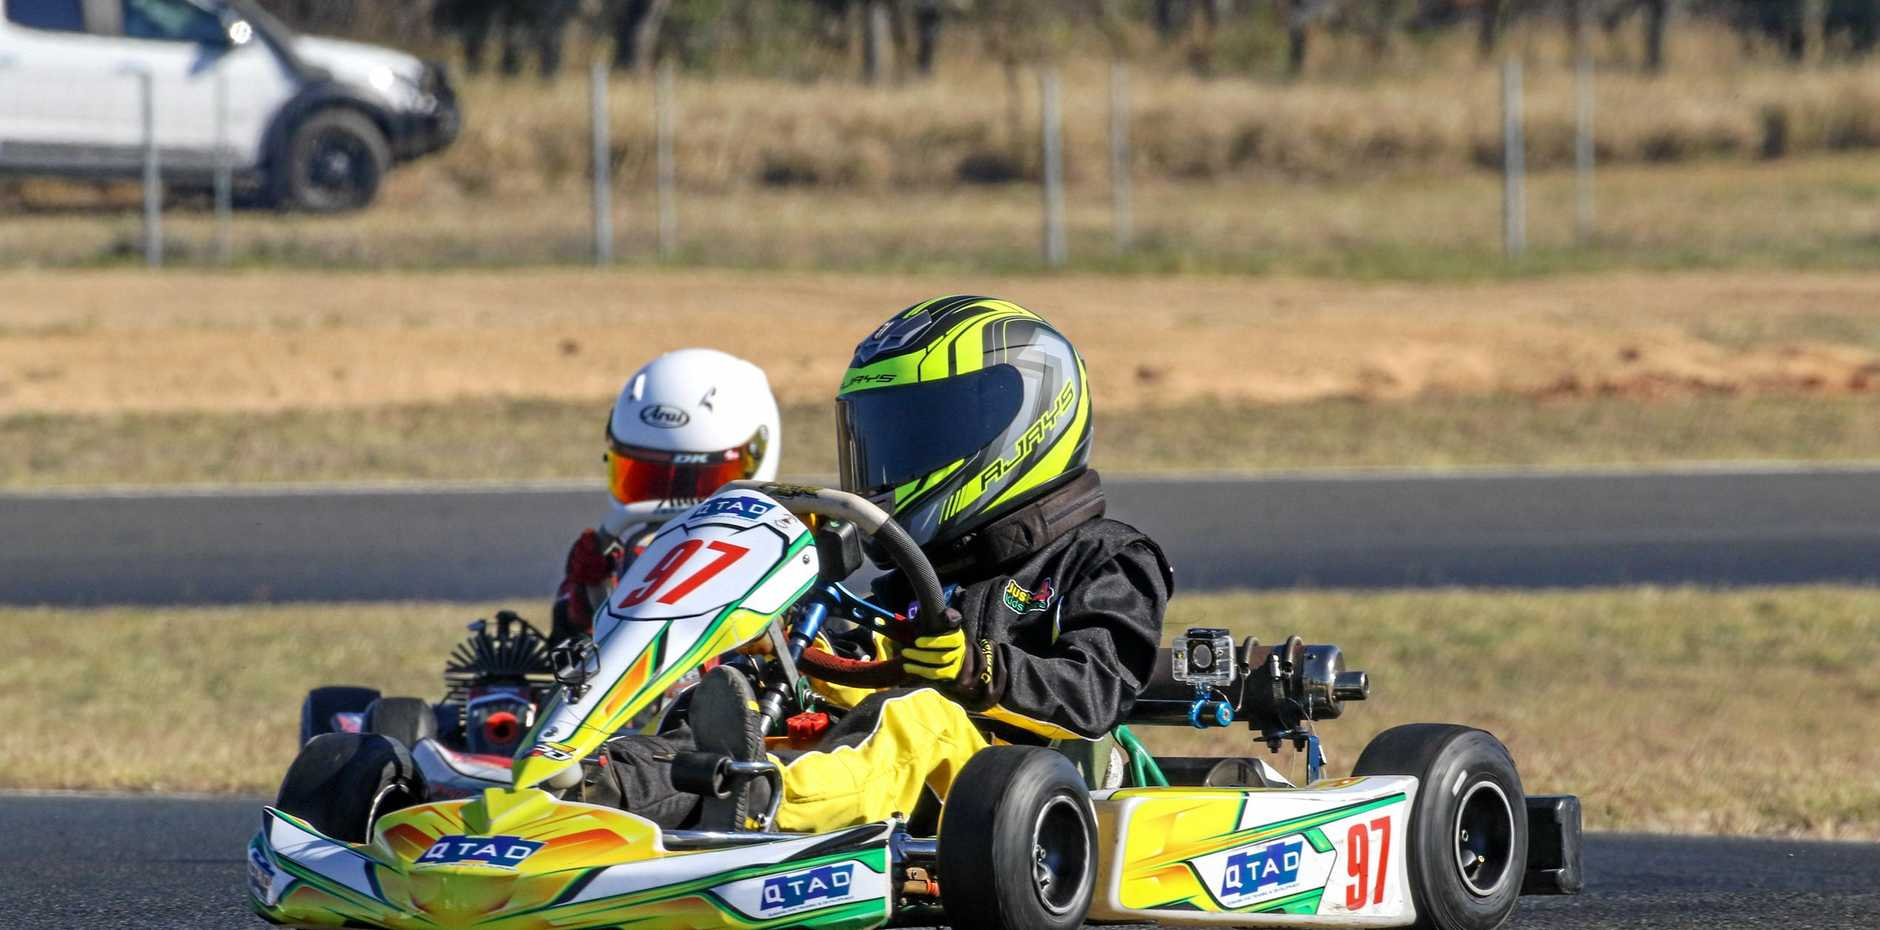 Go karting returns to Moranbah on Saturday after being closed for 18 months.